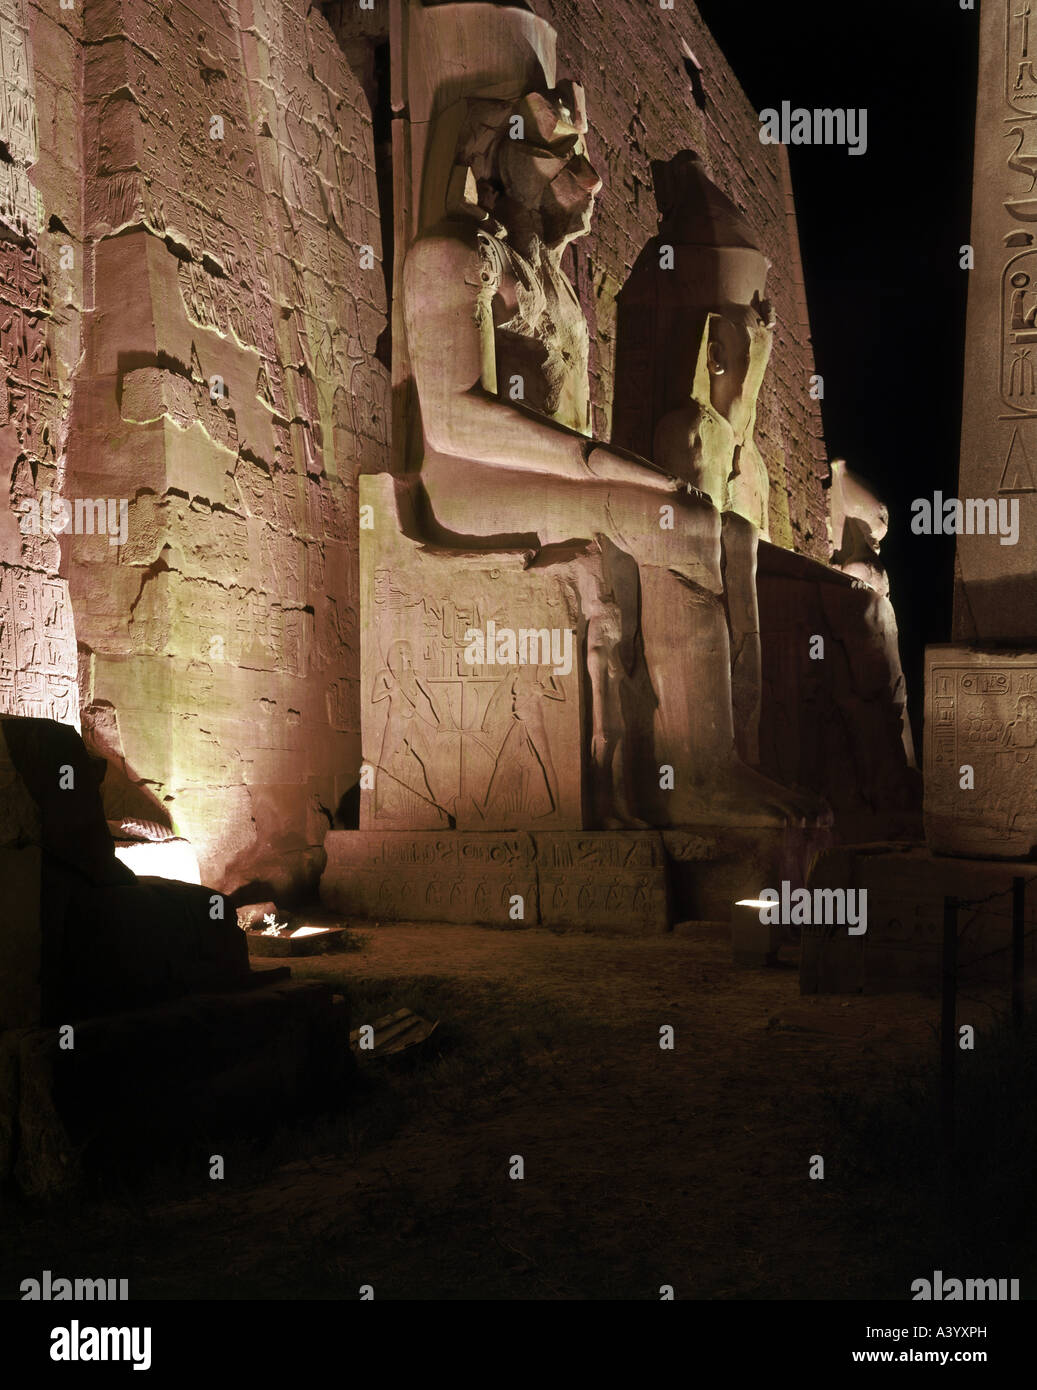 travel /geography, Egypt, Luxor, buildings, temple, Theban divine family Amun, Mut, Chons, exterior view, night, - Stock Image